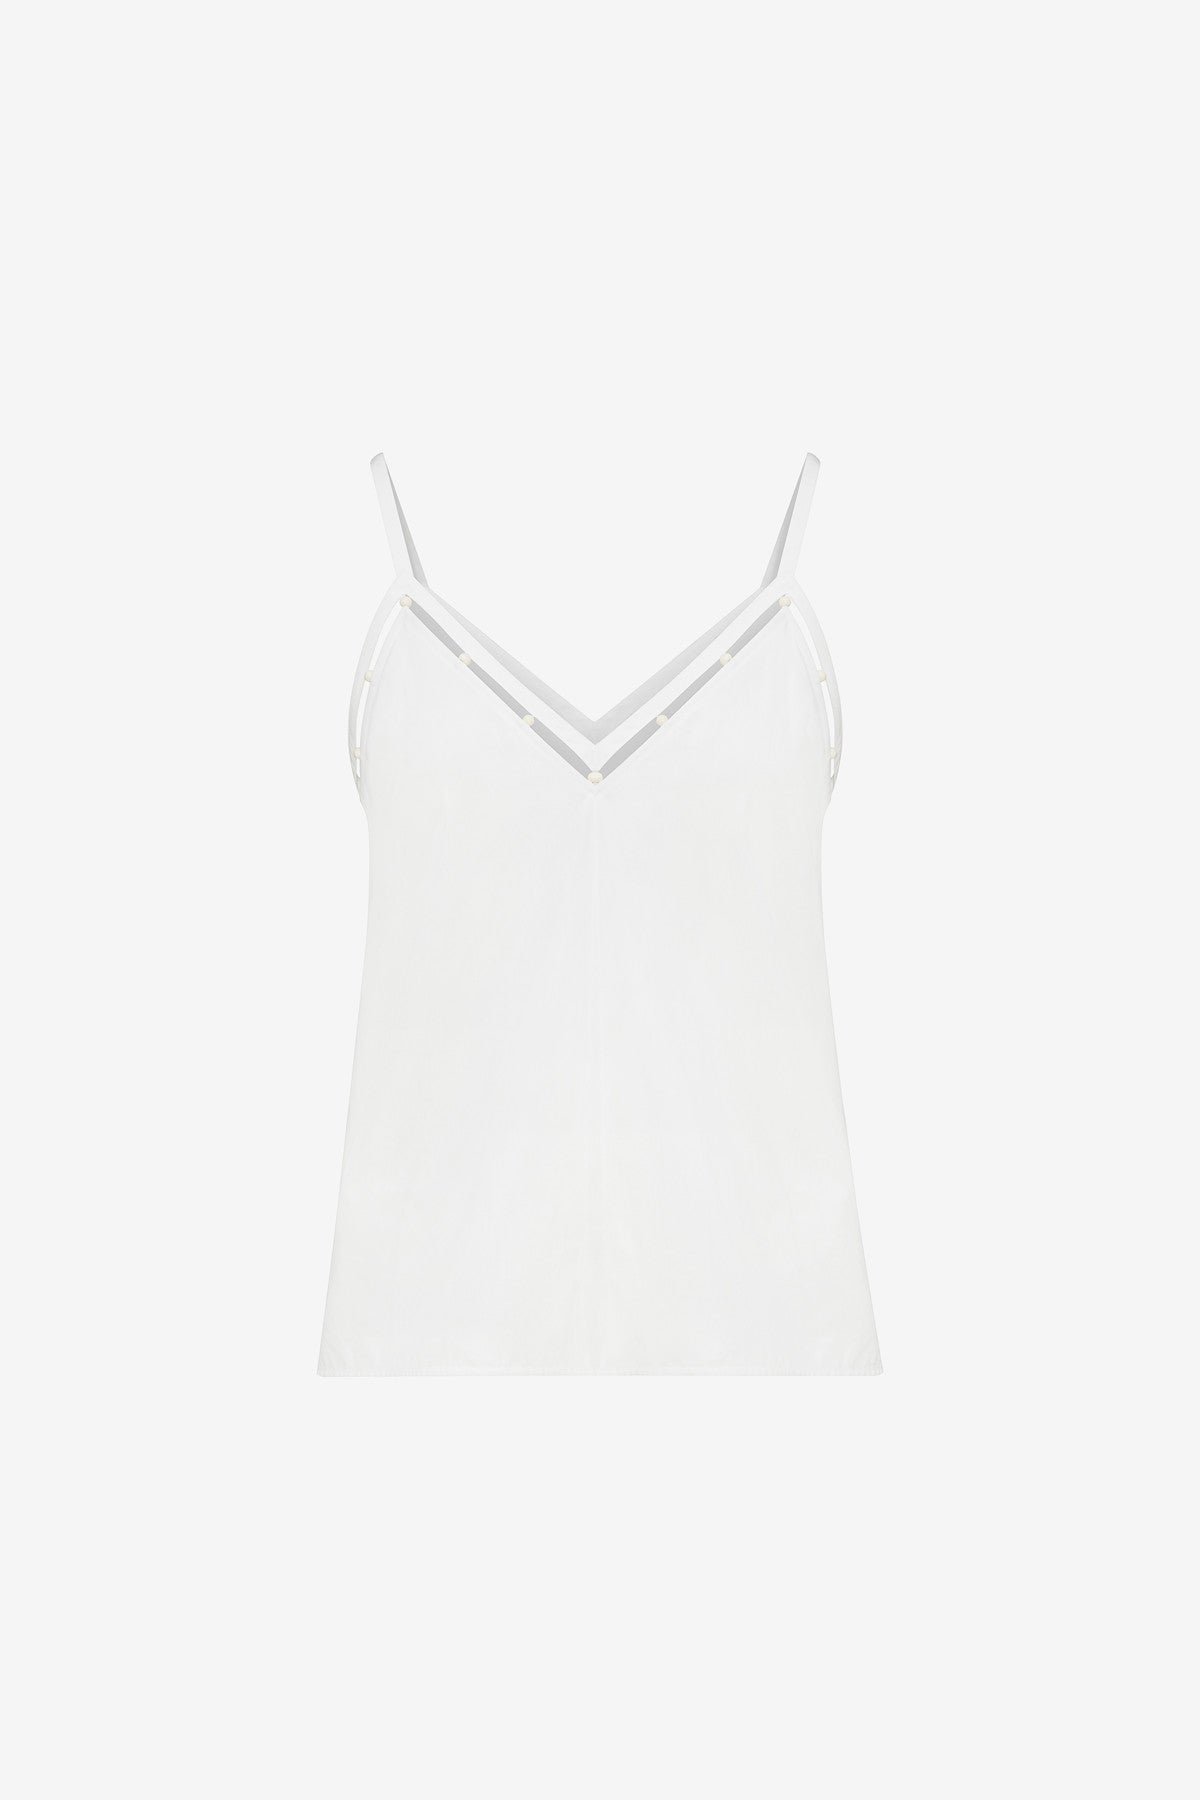 COTTON POPLIN BEADED CAMISOLE TOP